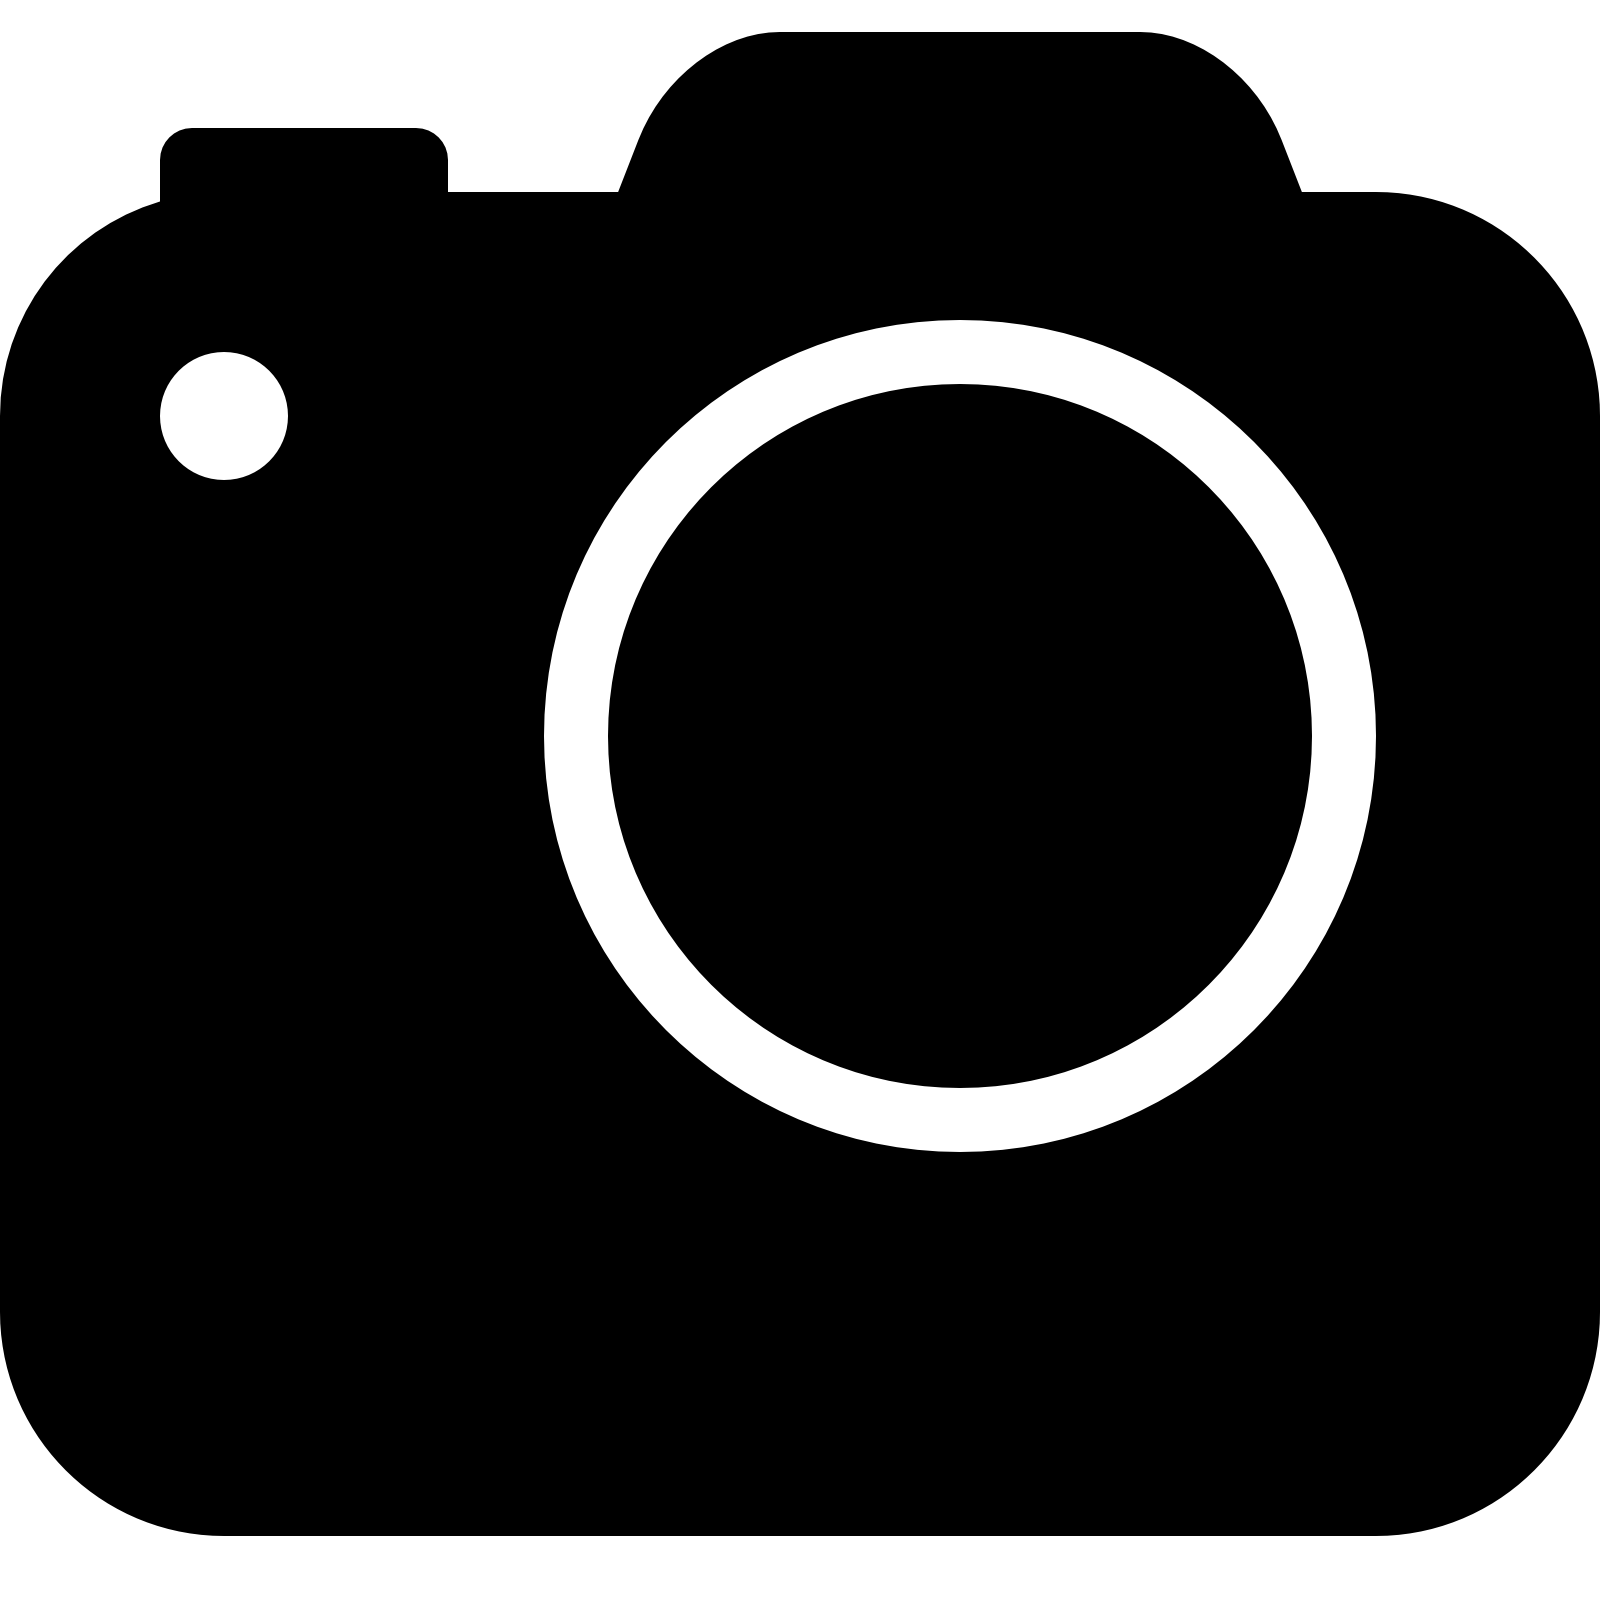 Computer Icons Camera Photography Clip art.